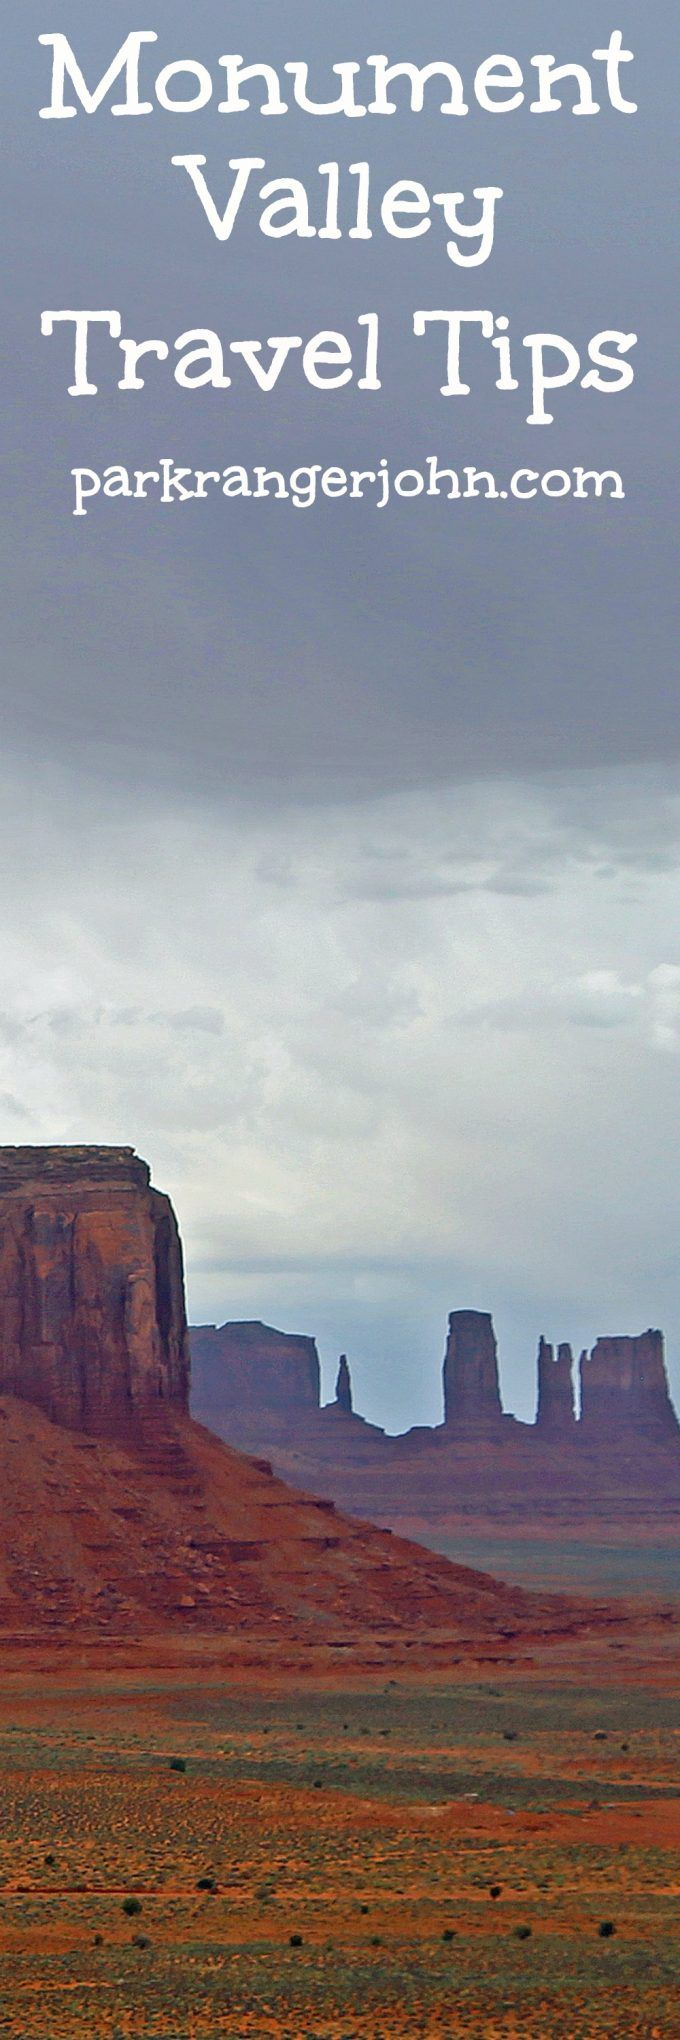 Monument Valley Navajo Tribal Park in Utah includes travel tips on travel, costs, road trip including the 17-mile loop scenic drive via @ParkRangerJohn